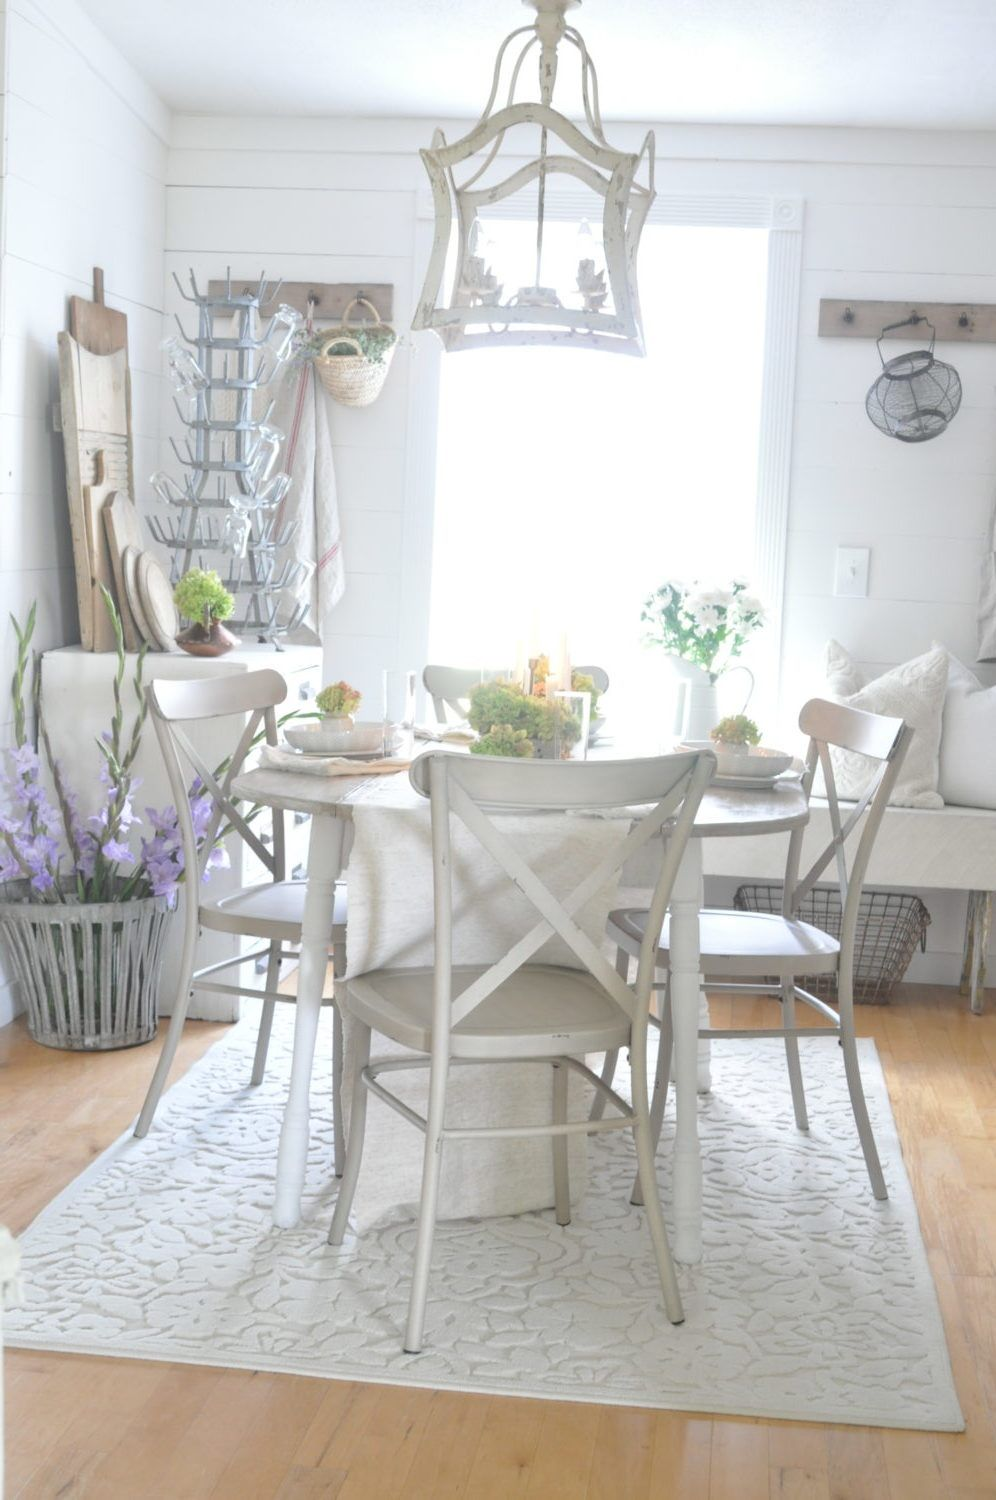 Three MustHaves for Creating a Cozy Home Cozy house